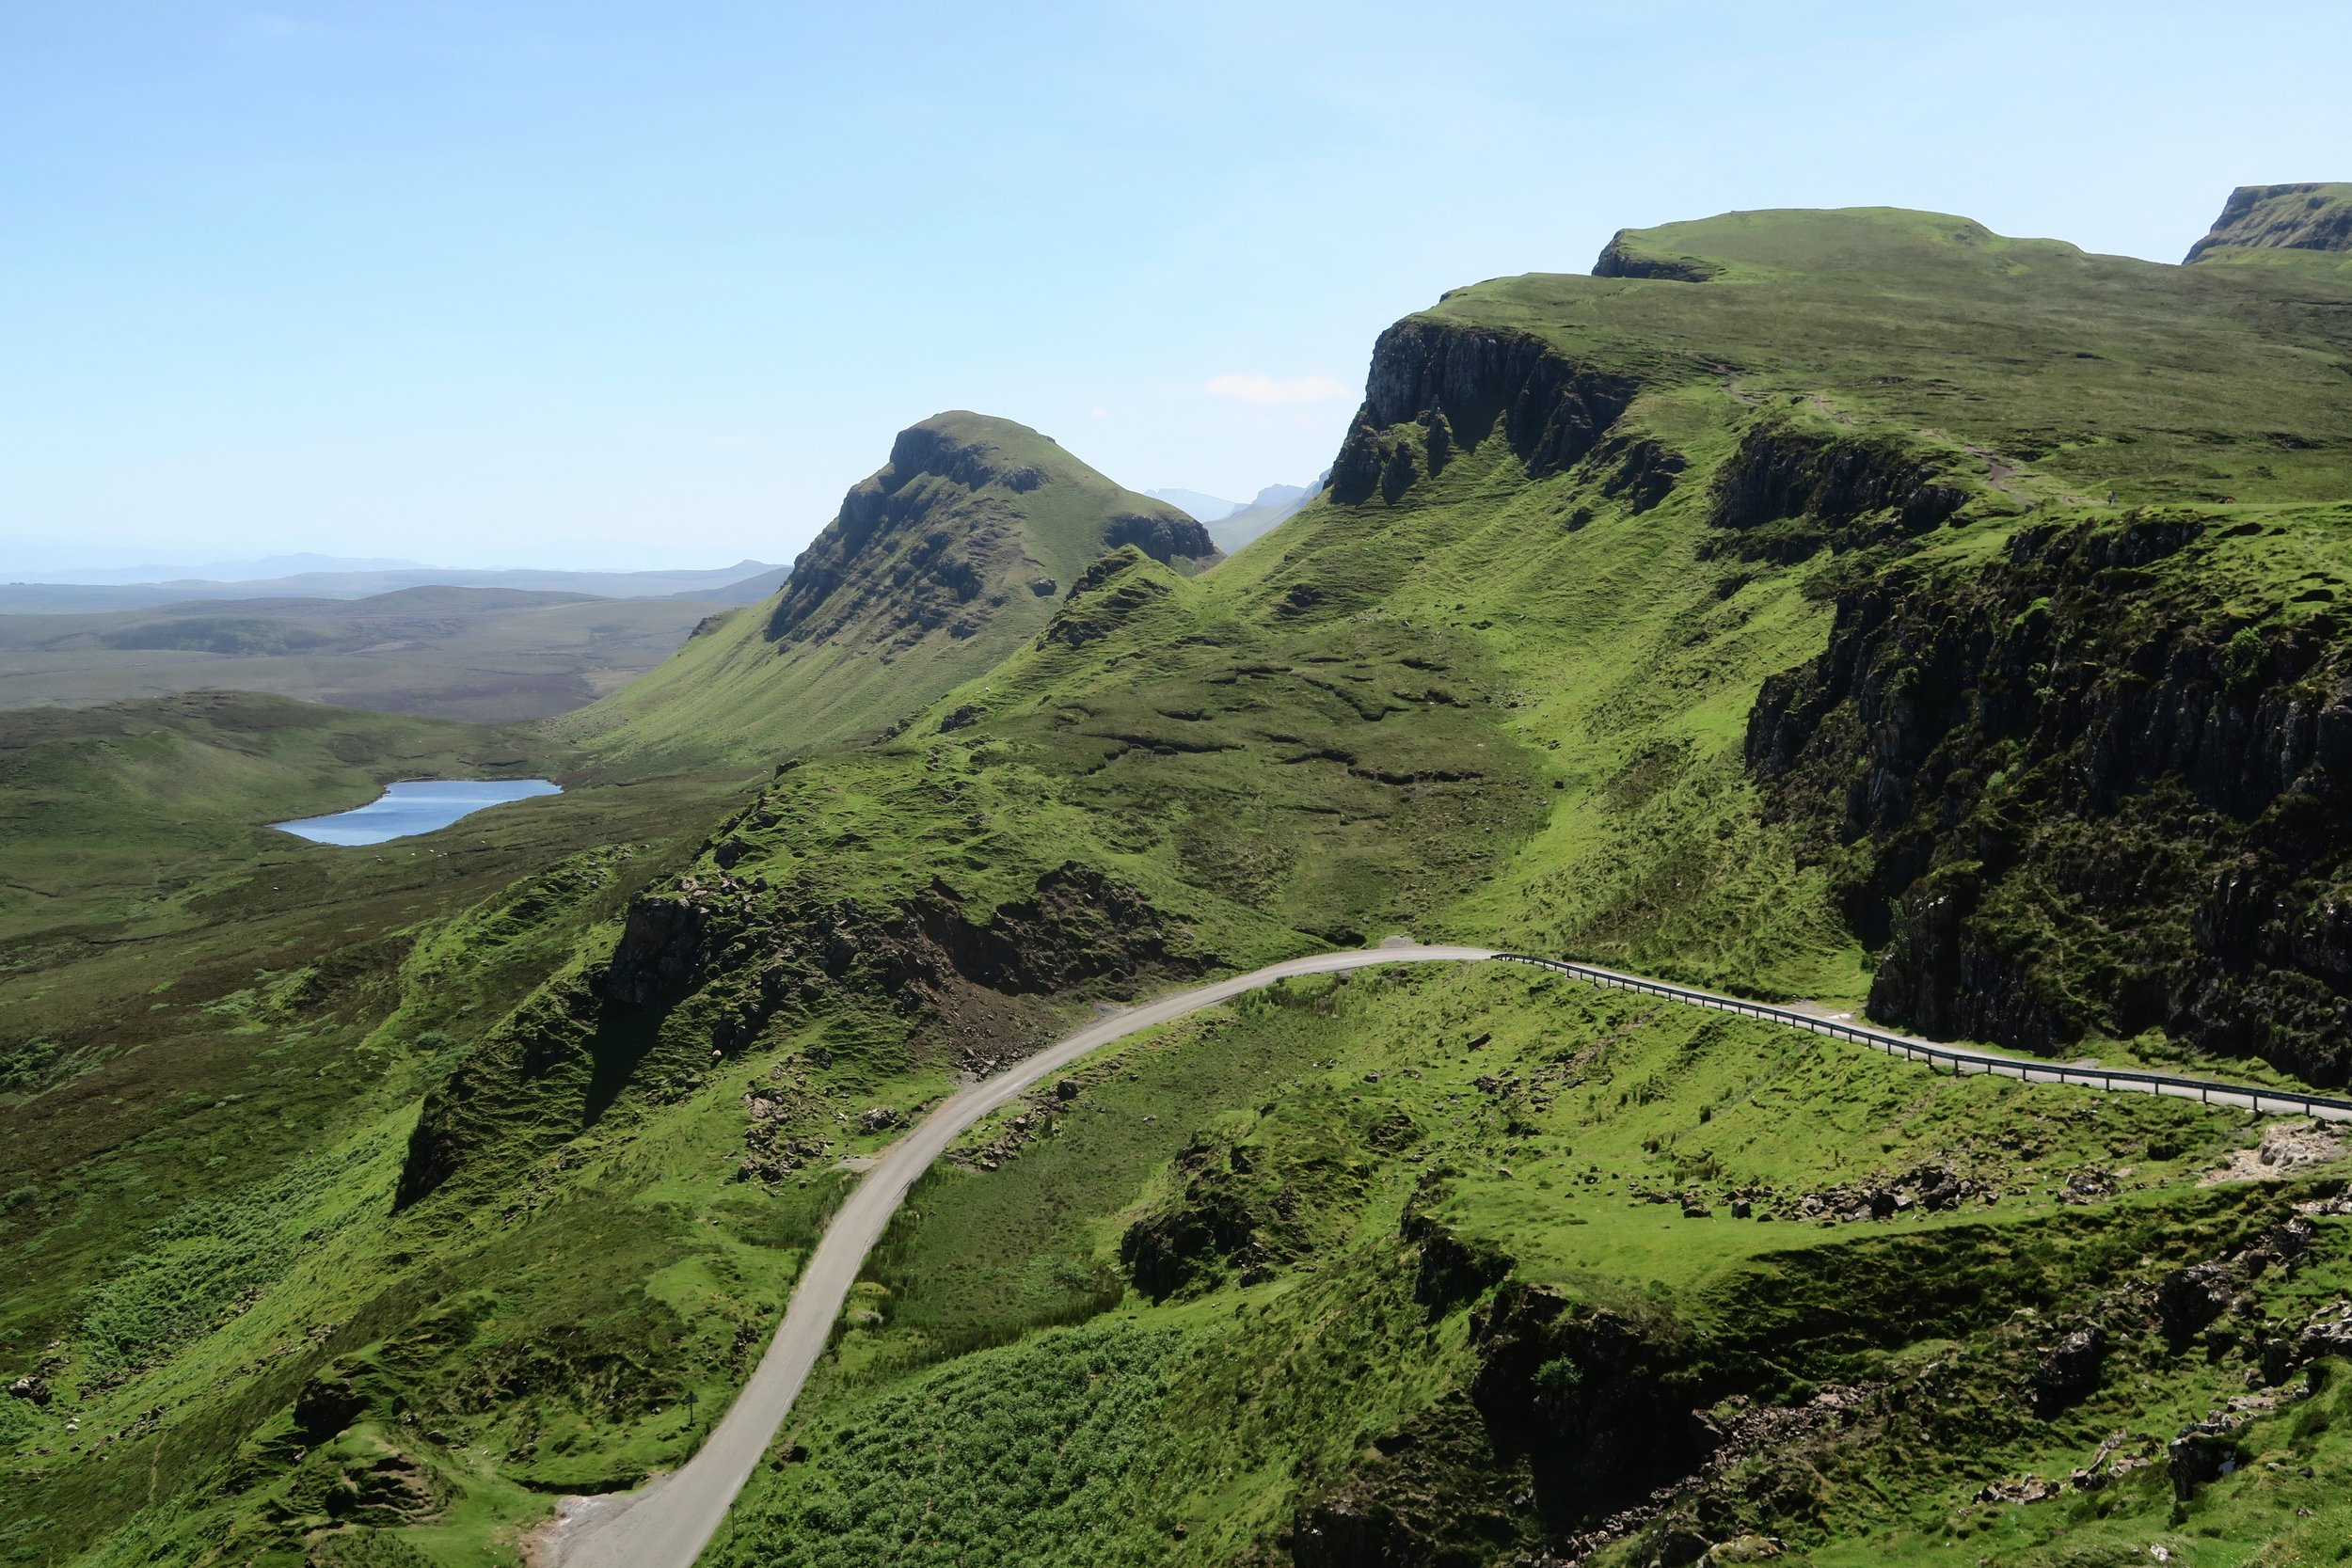 Quiraing - george-hiles-114415-unsplash.jpg